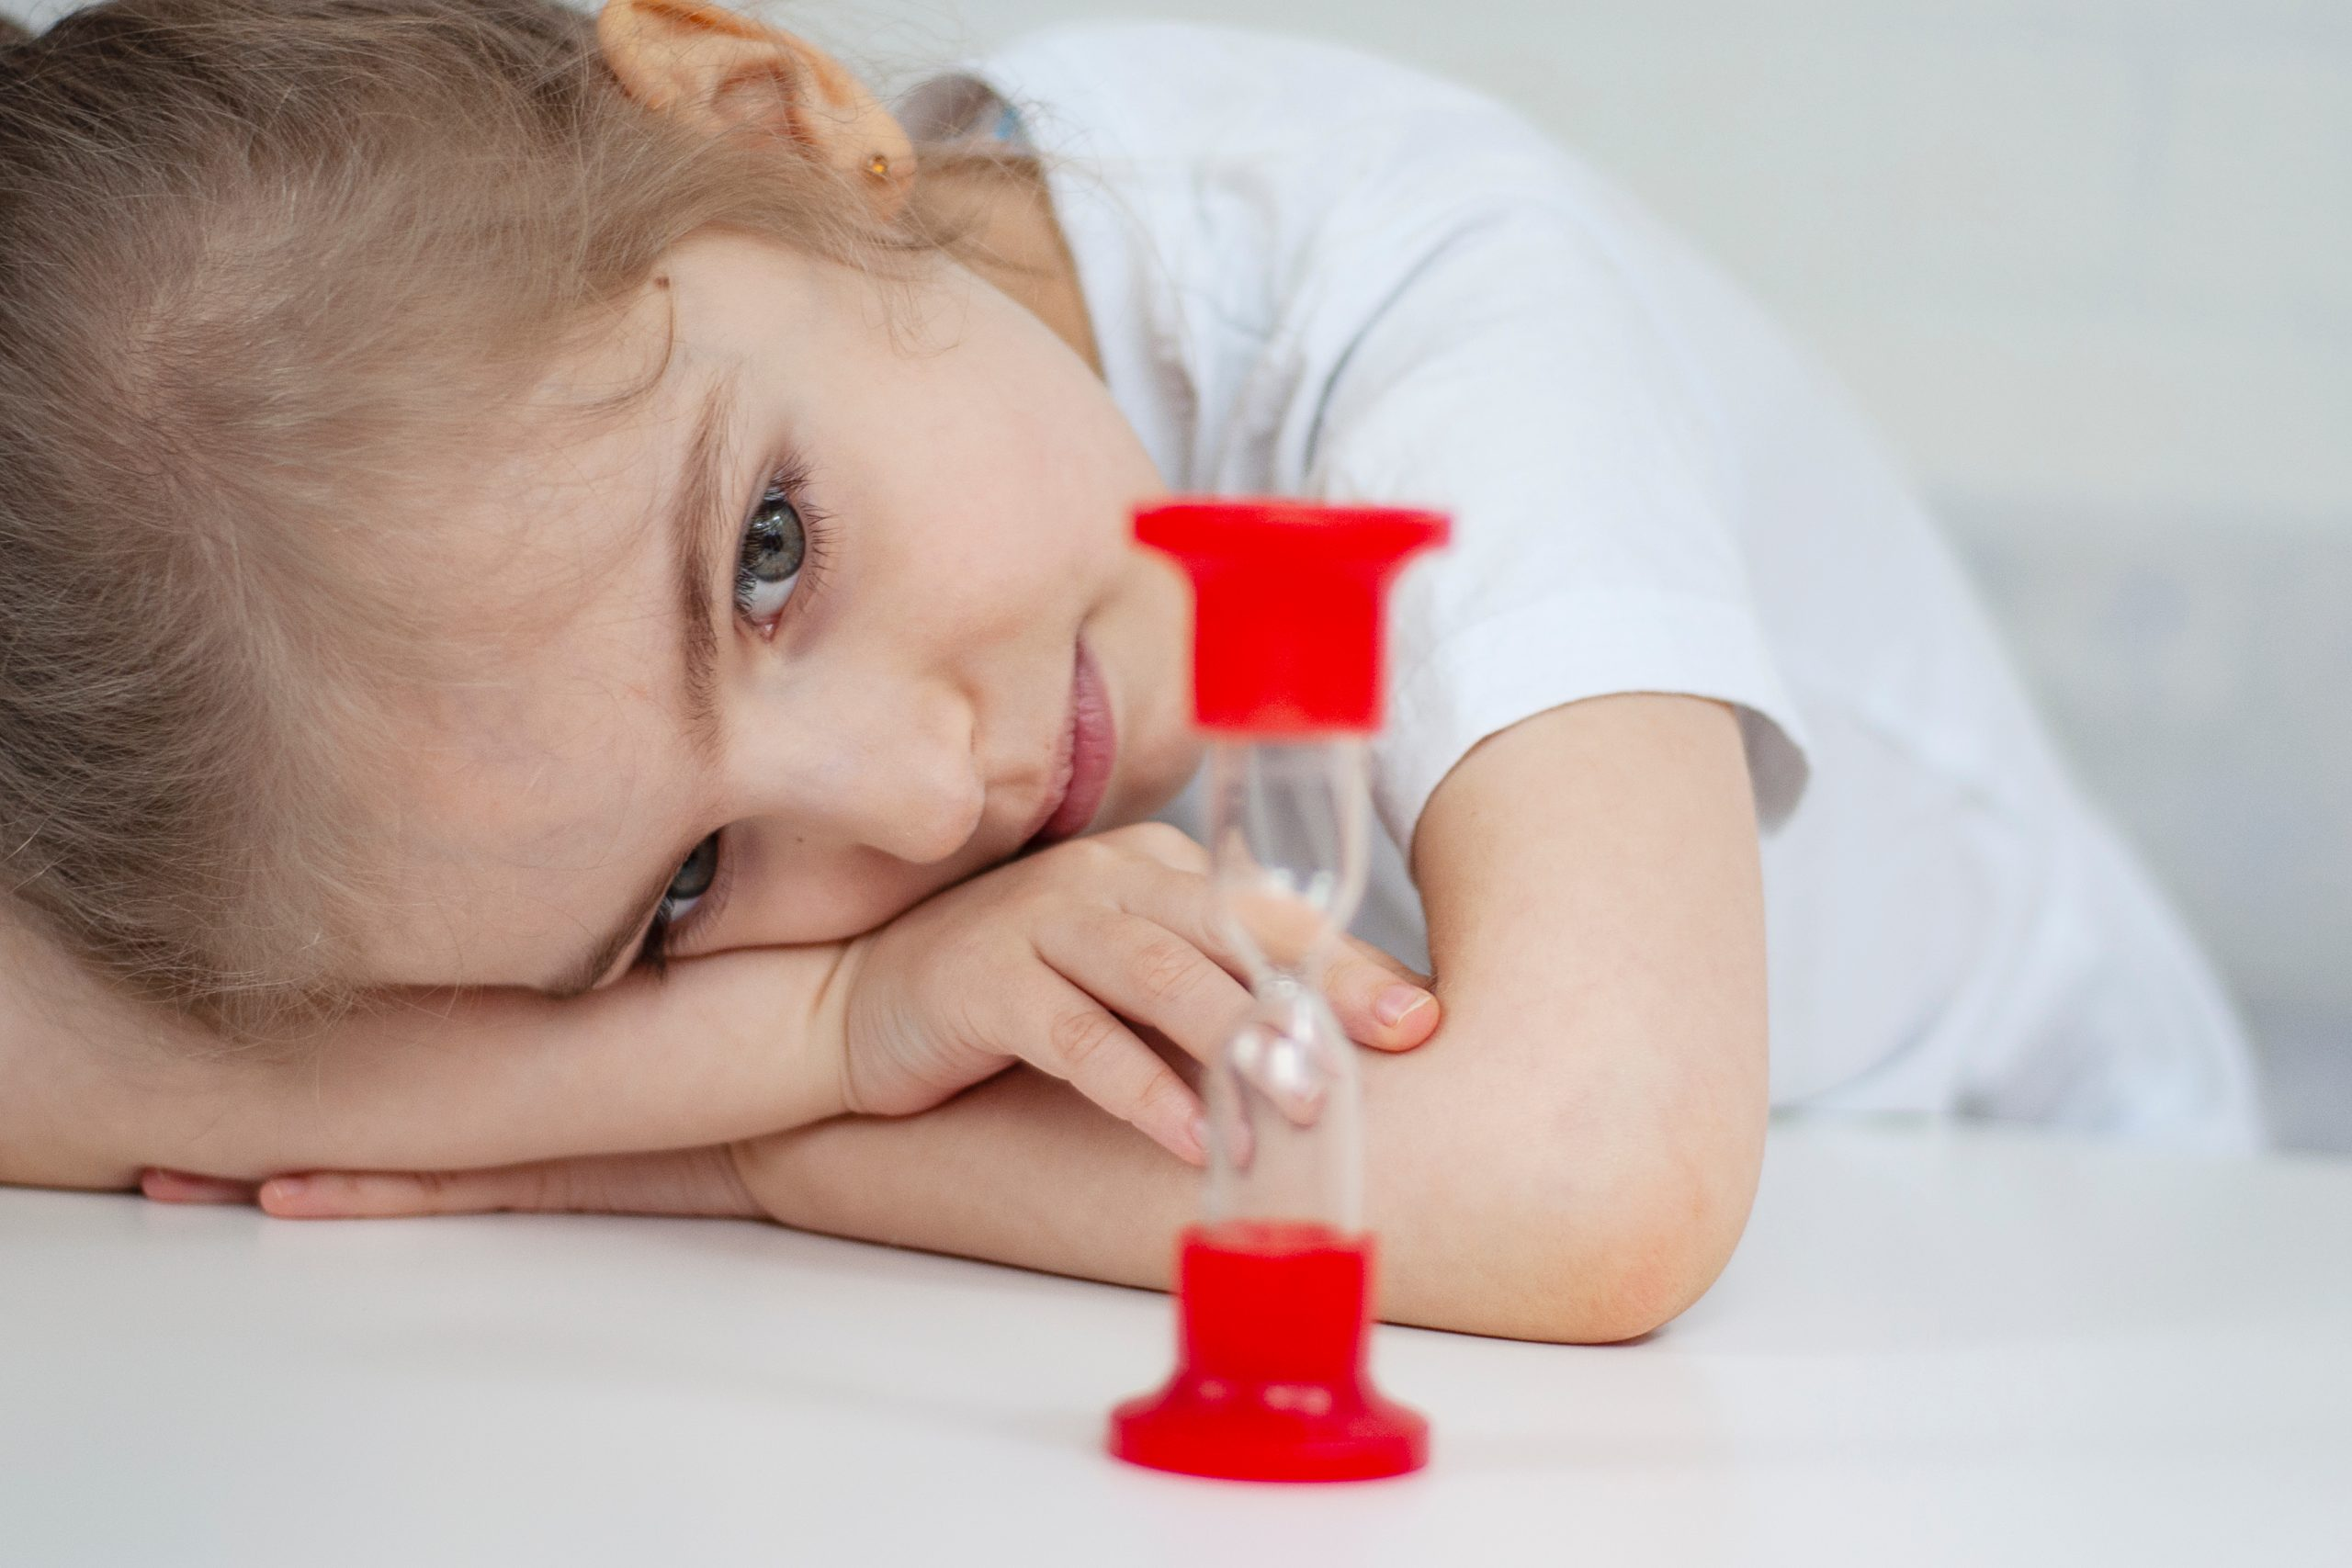 Upsoftskills - Time administration course for kids